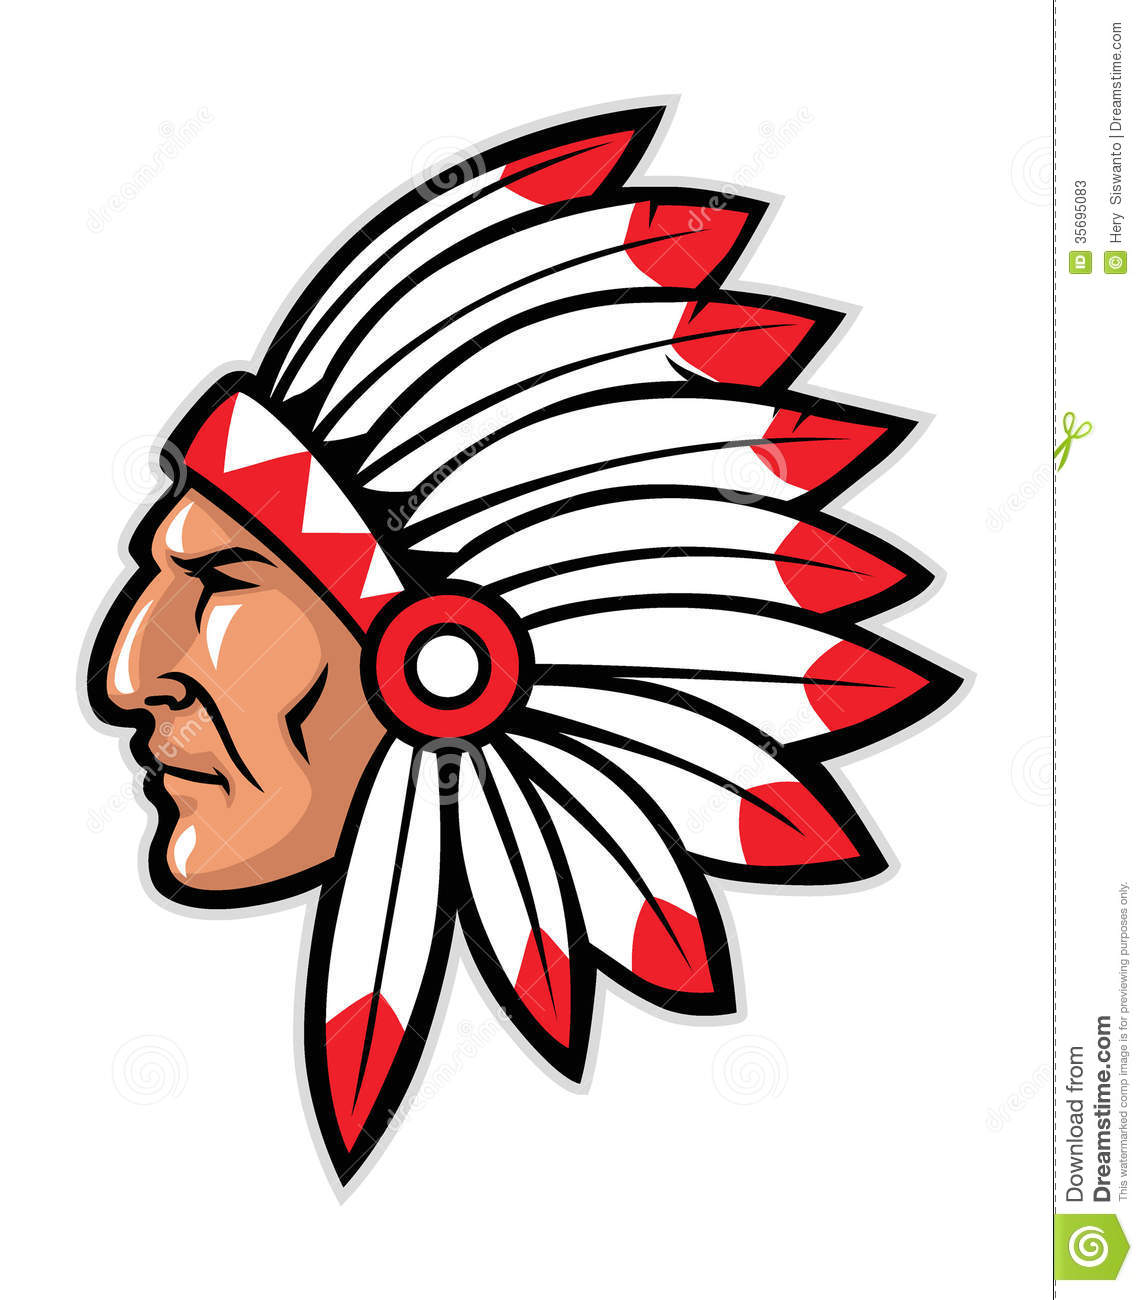 Canoe clipart cherokee indian Thanksgiving Indian chief Clipart Indian